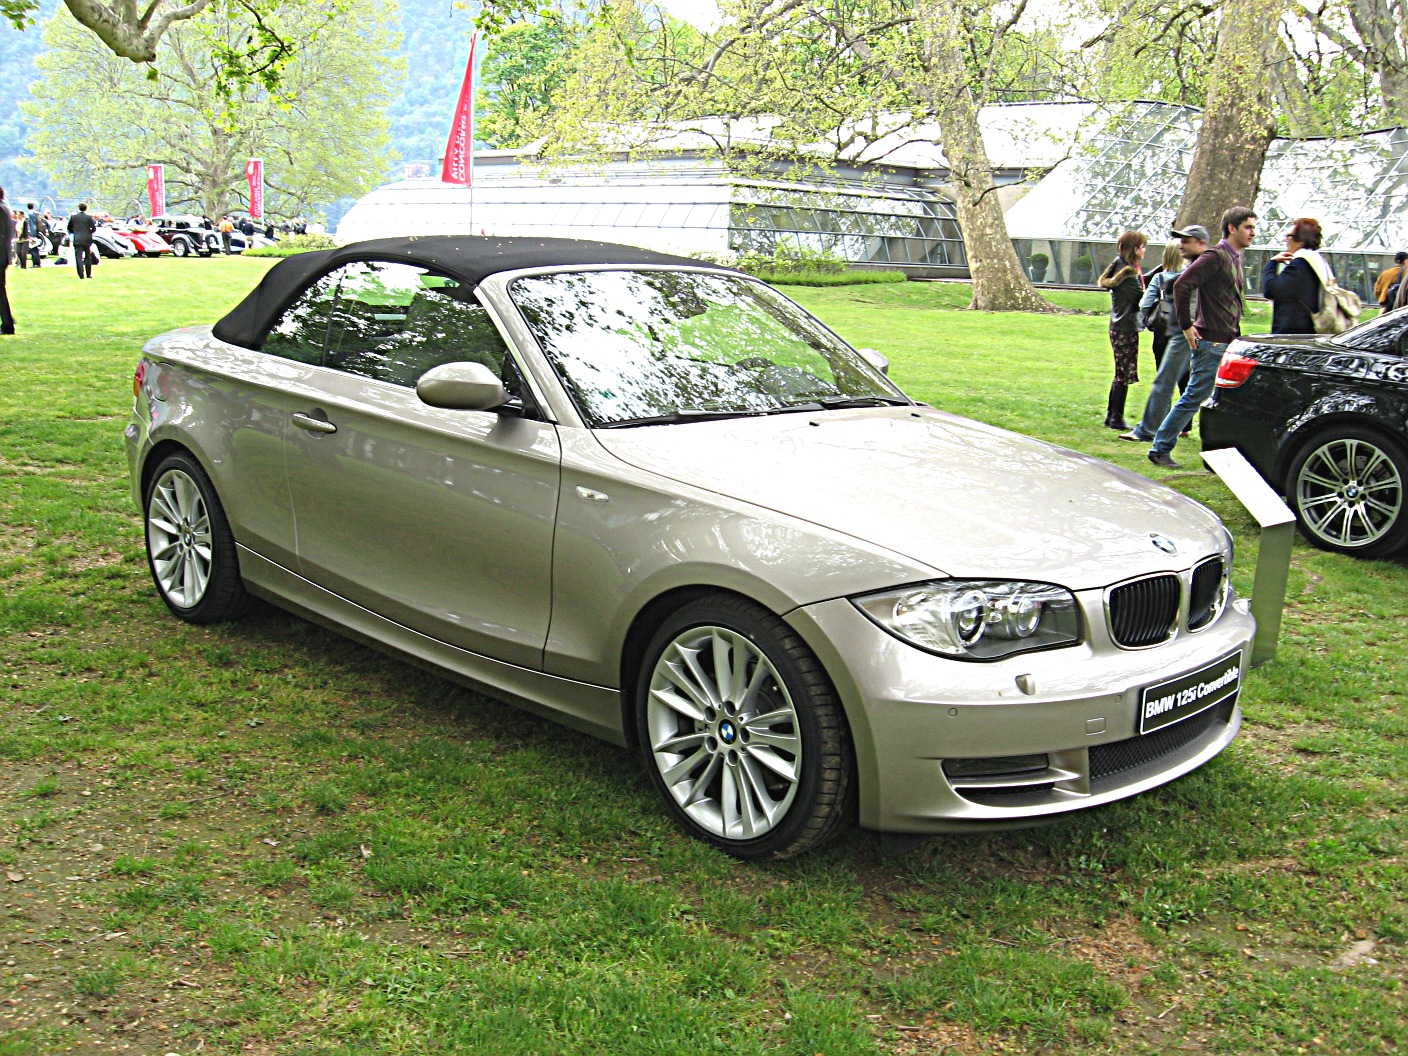 file bmw 125i cabriolet jpg wikimedia commons. Black Bedroom Furniture Sets. Home Design Ideas